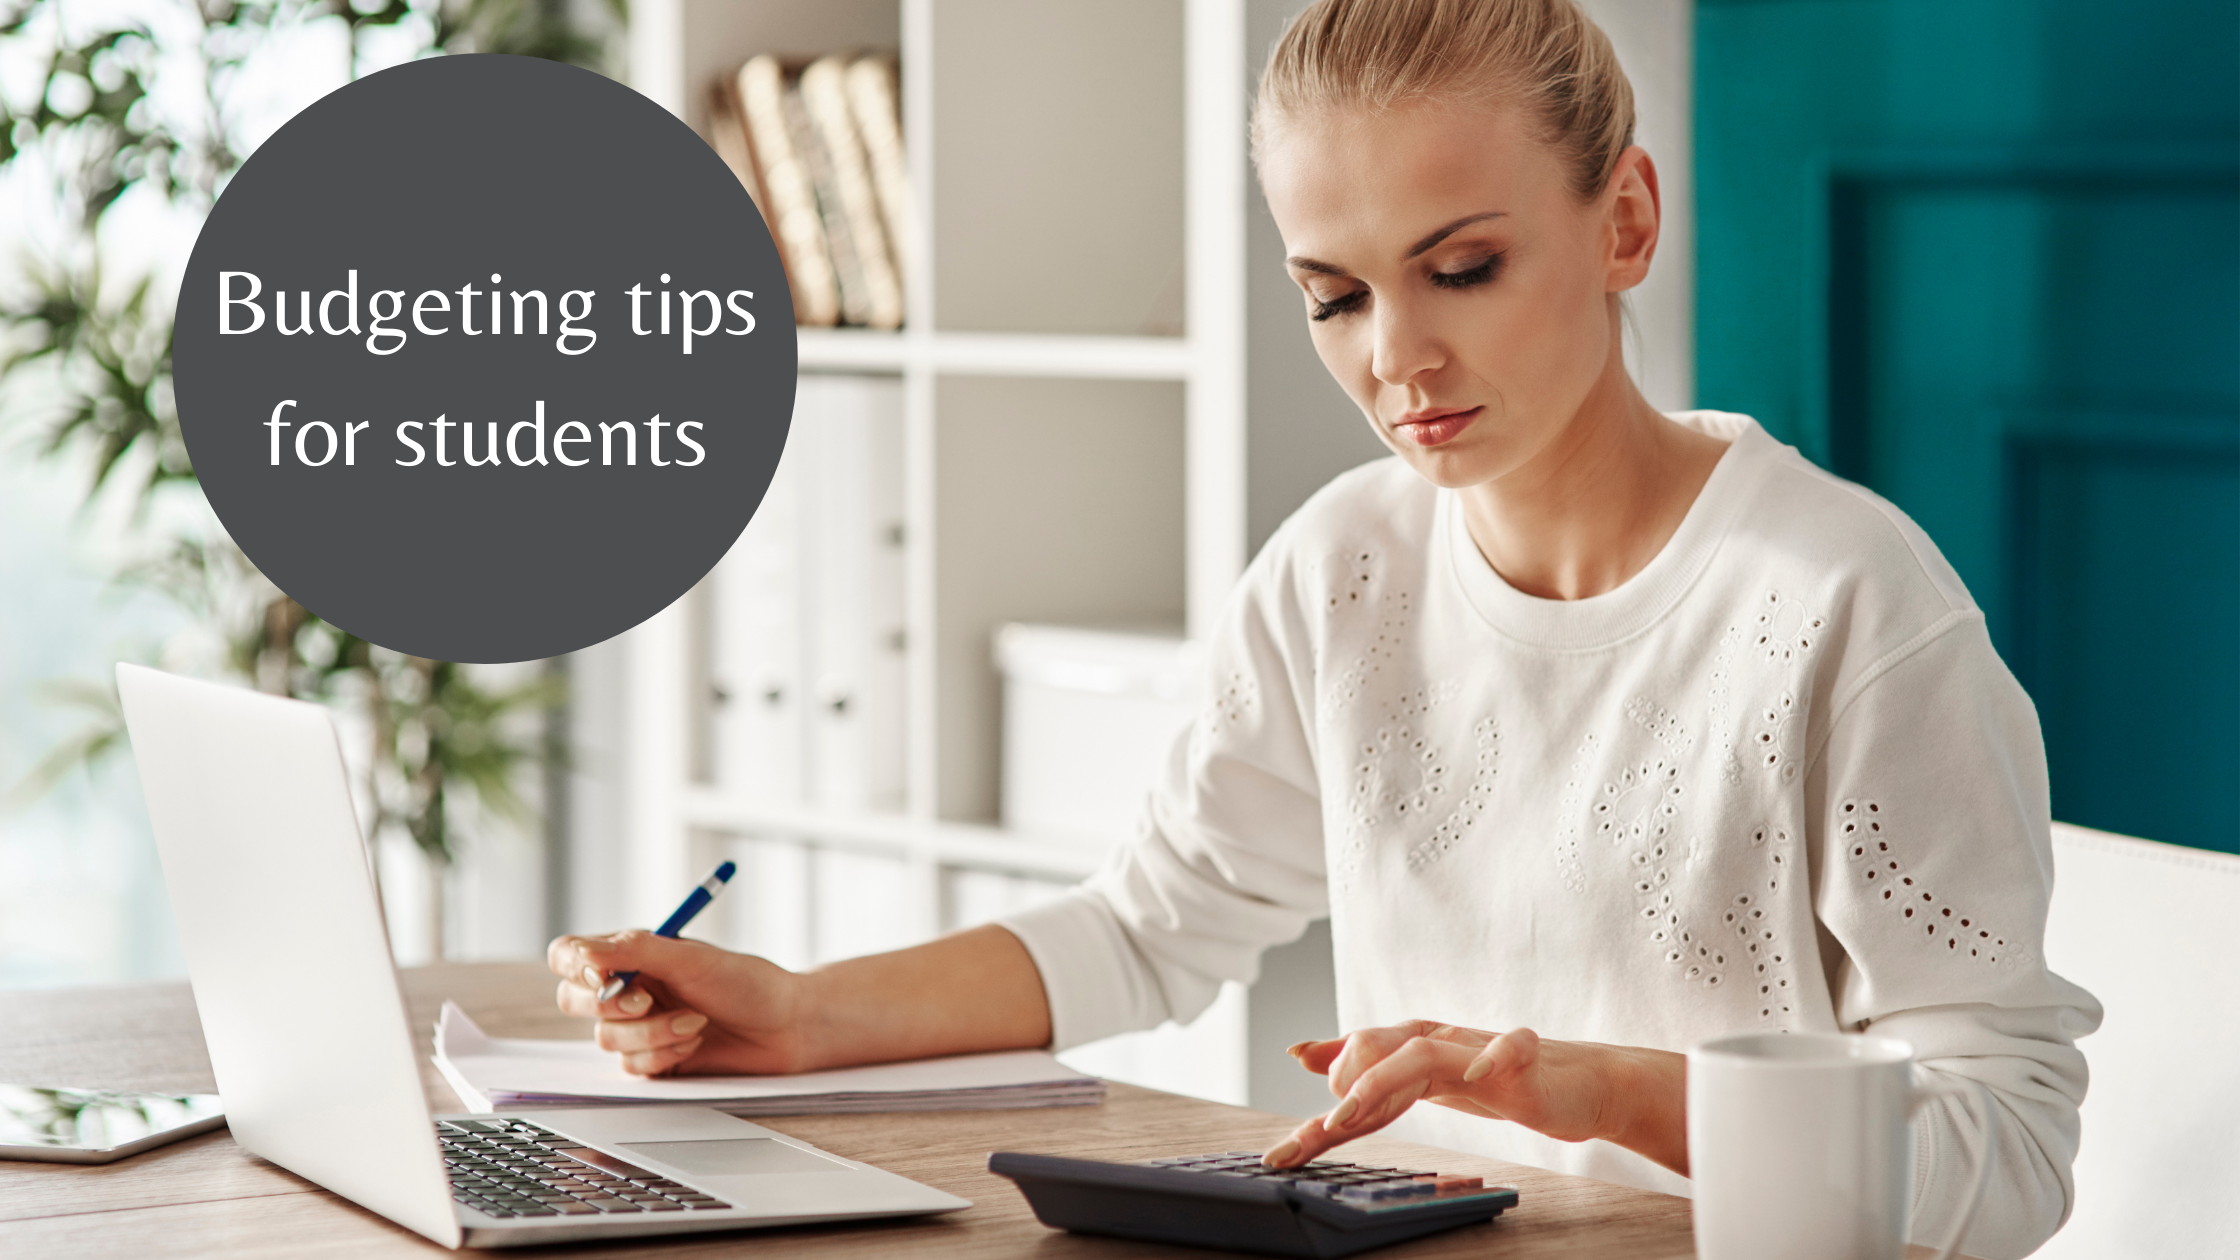 Budgeting tips for students